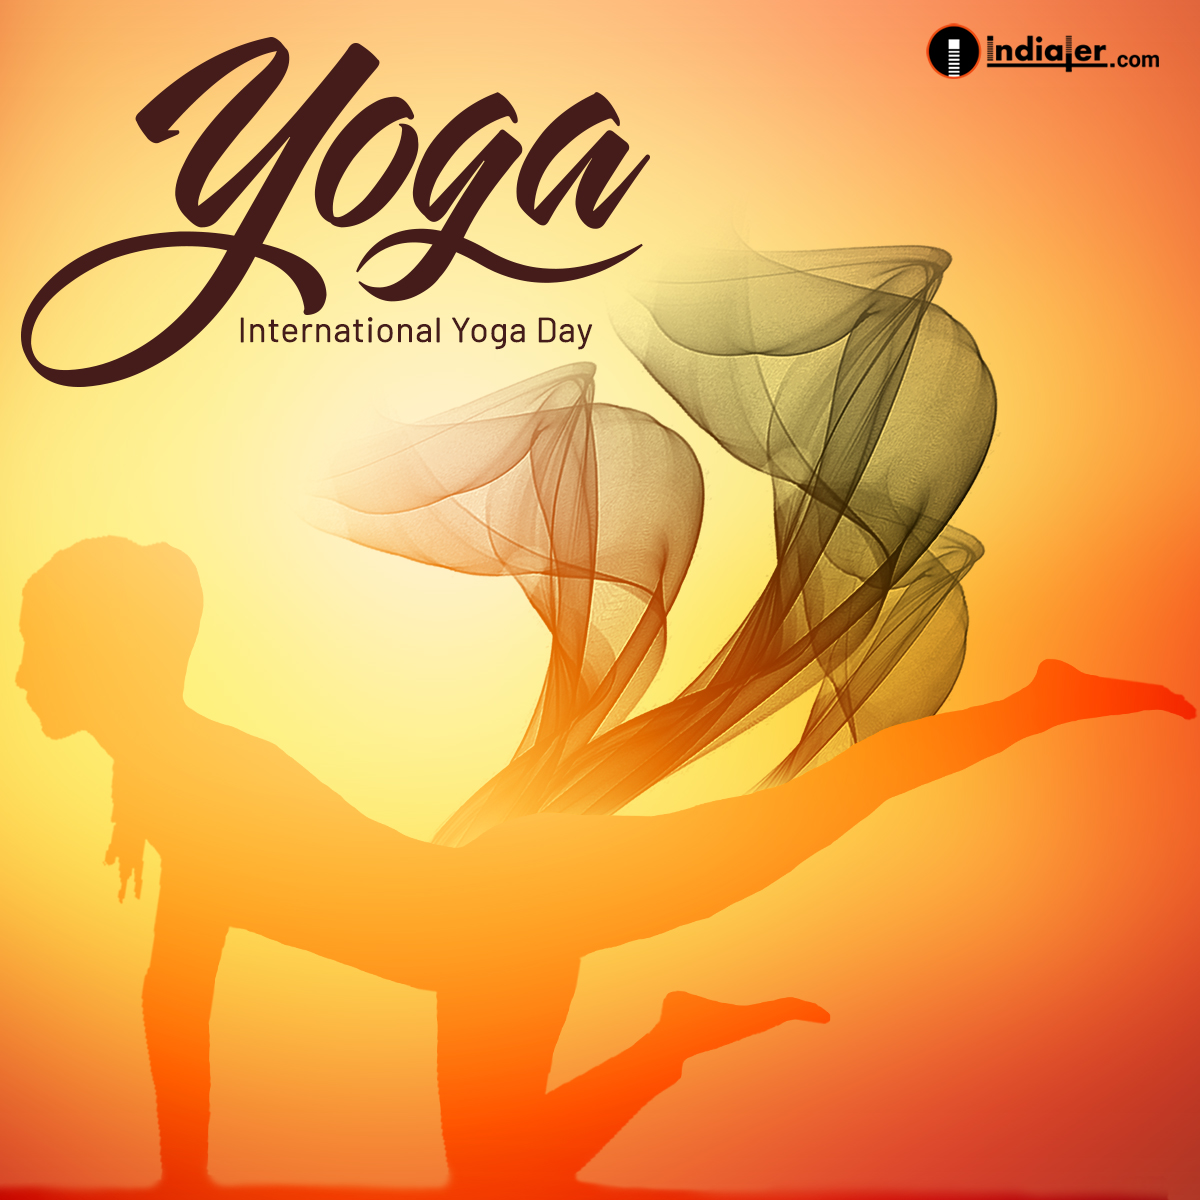 International Yoga Day Free Creative Design Template PSD